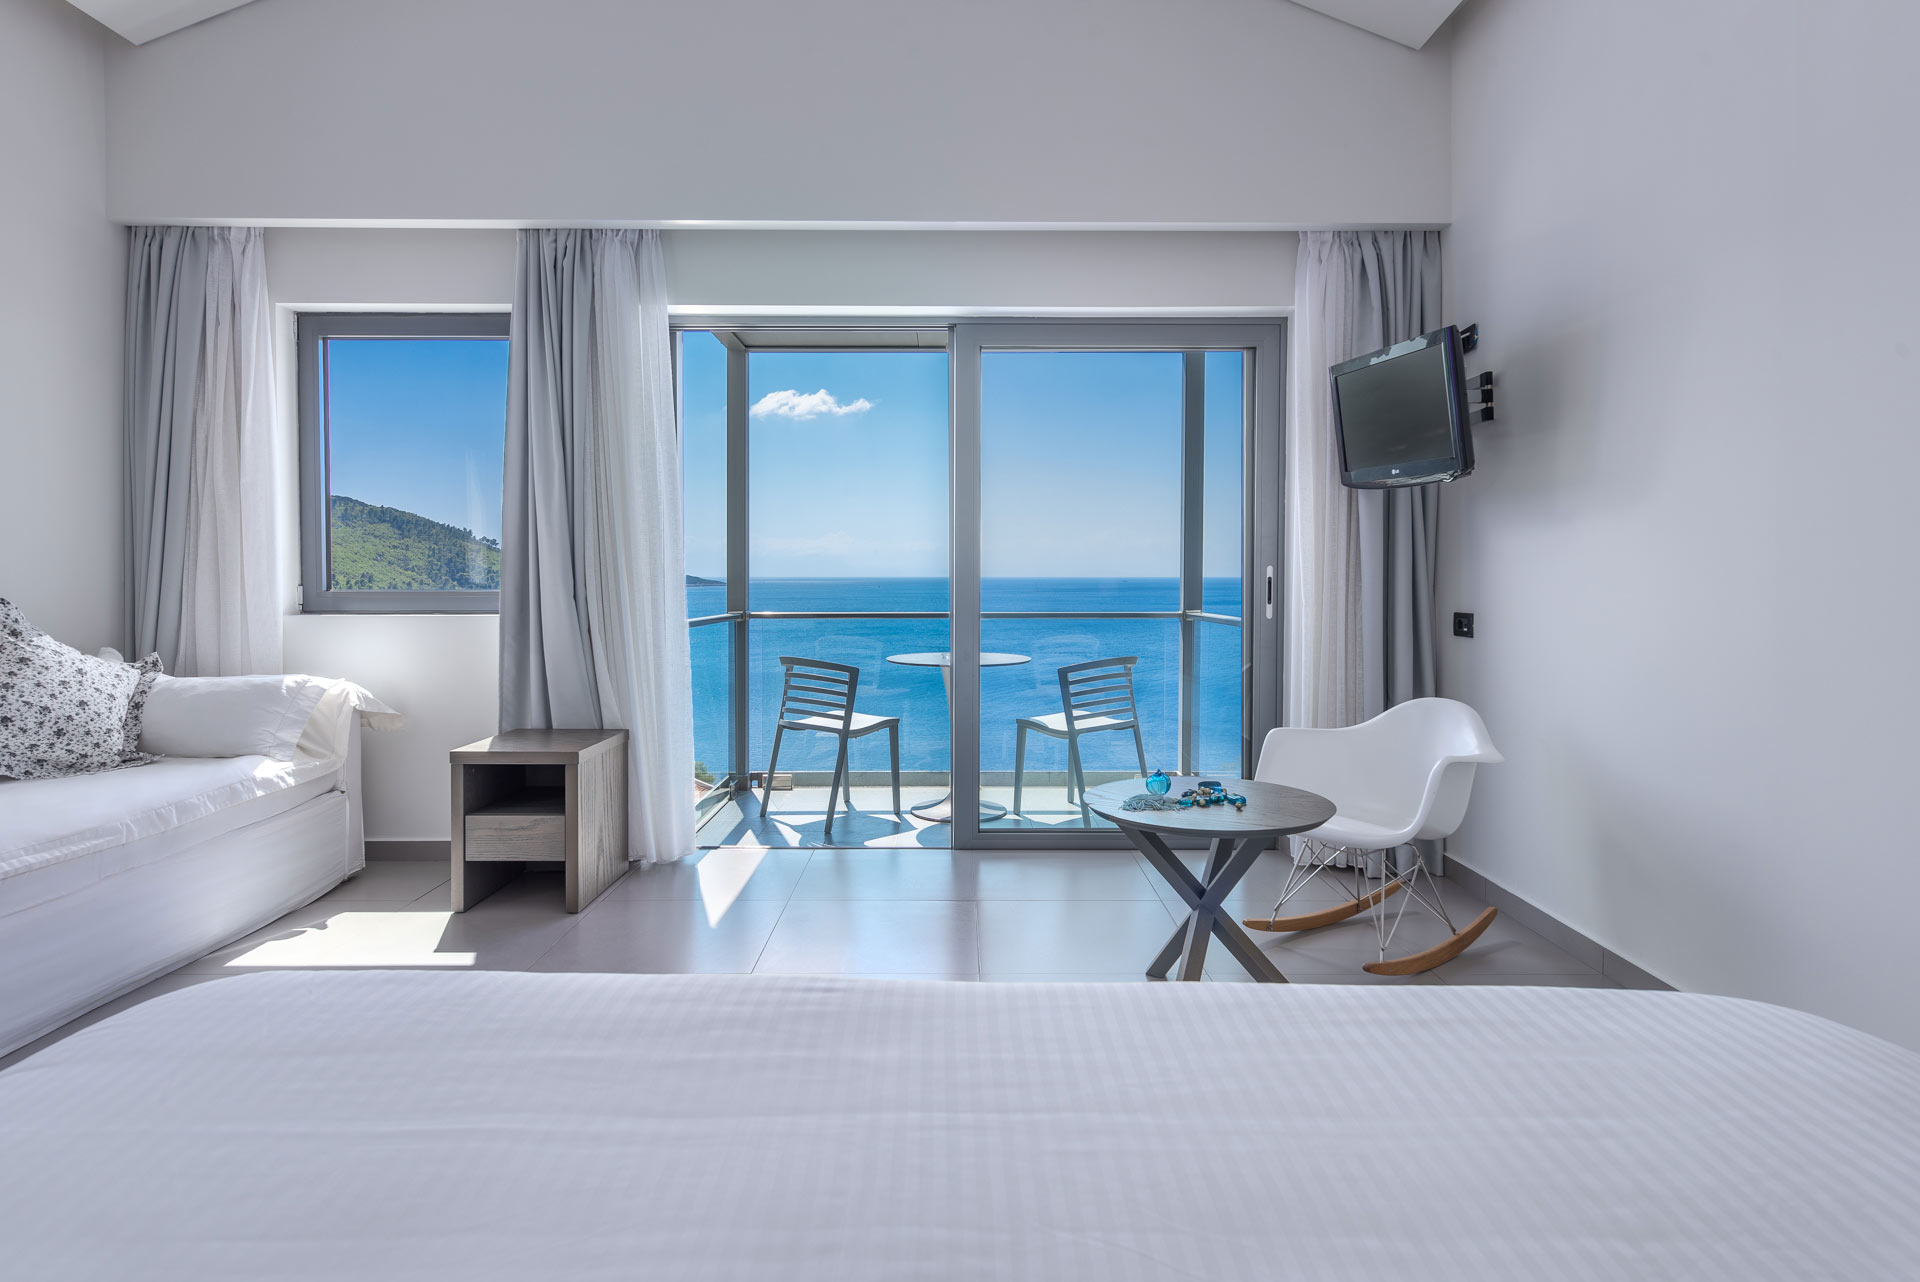 skopelos hotels adrina resort 1 beroom 2 level villa 762